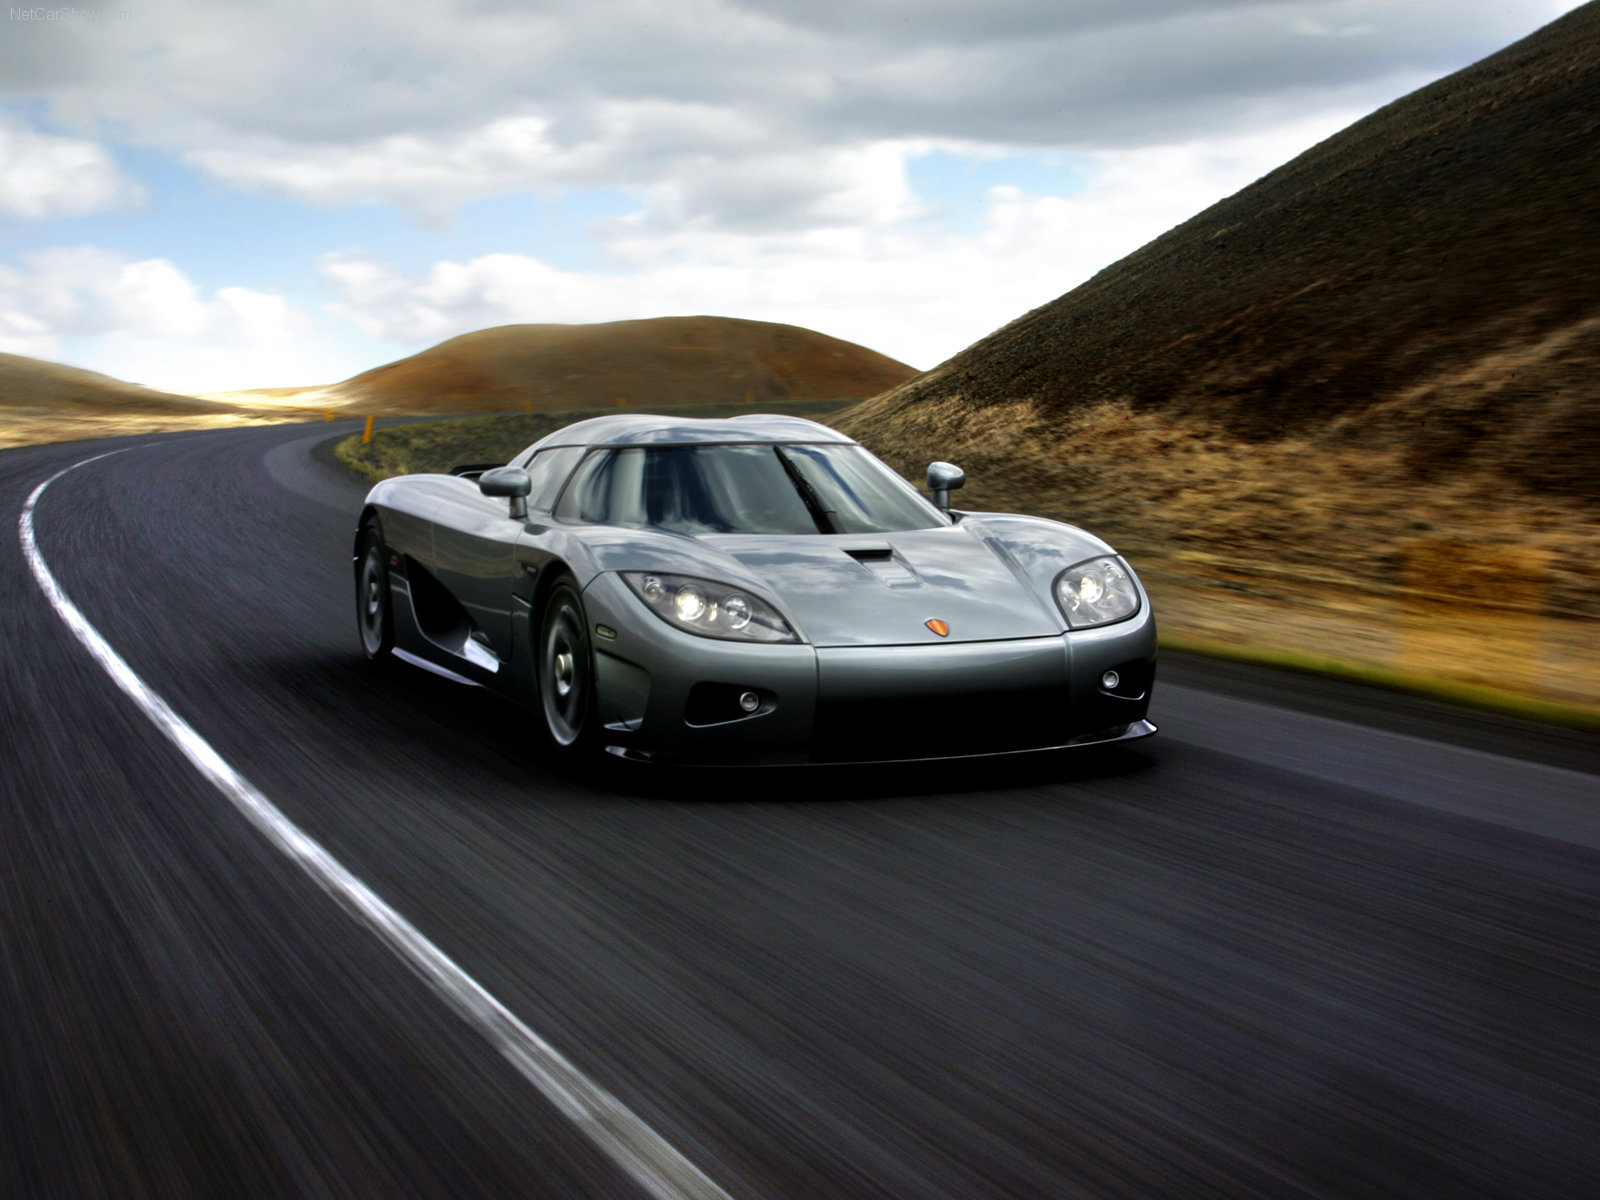 Koenigsegg-CCX_2006_1600x1200_wallpaper_02